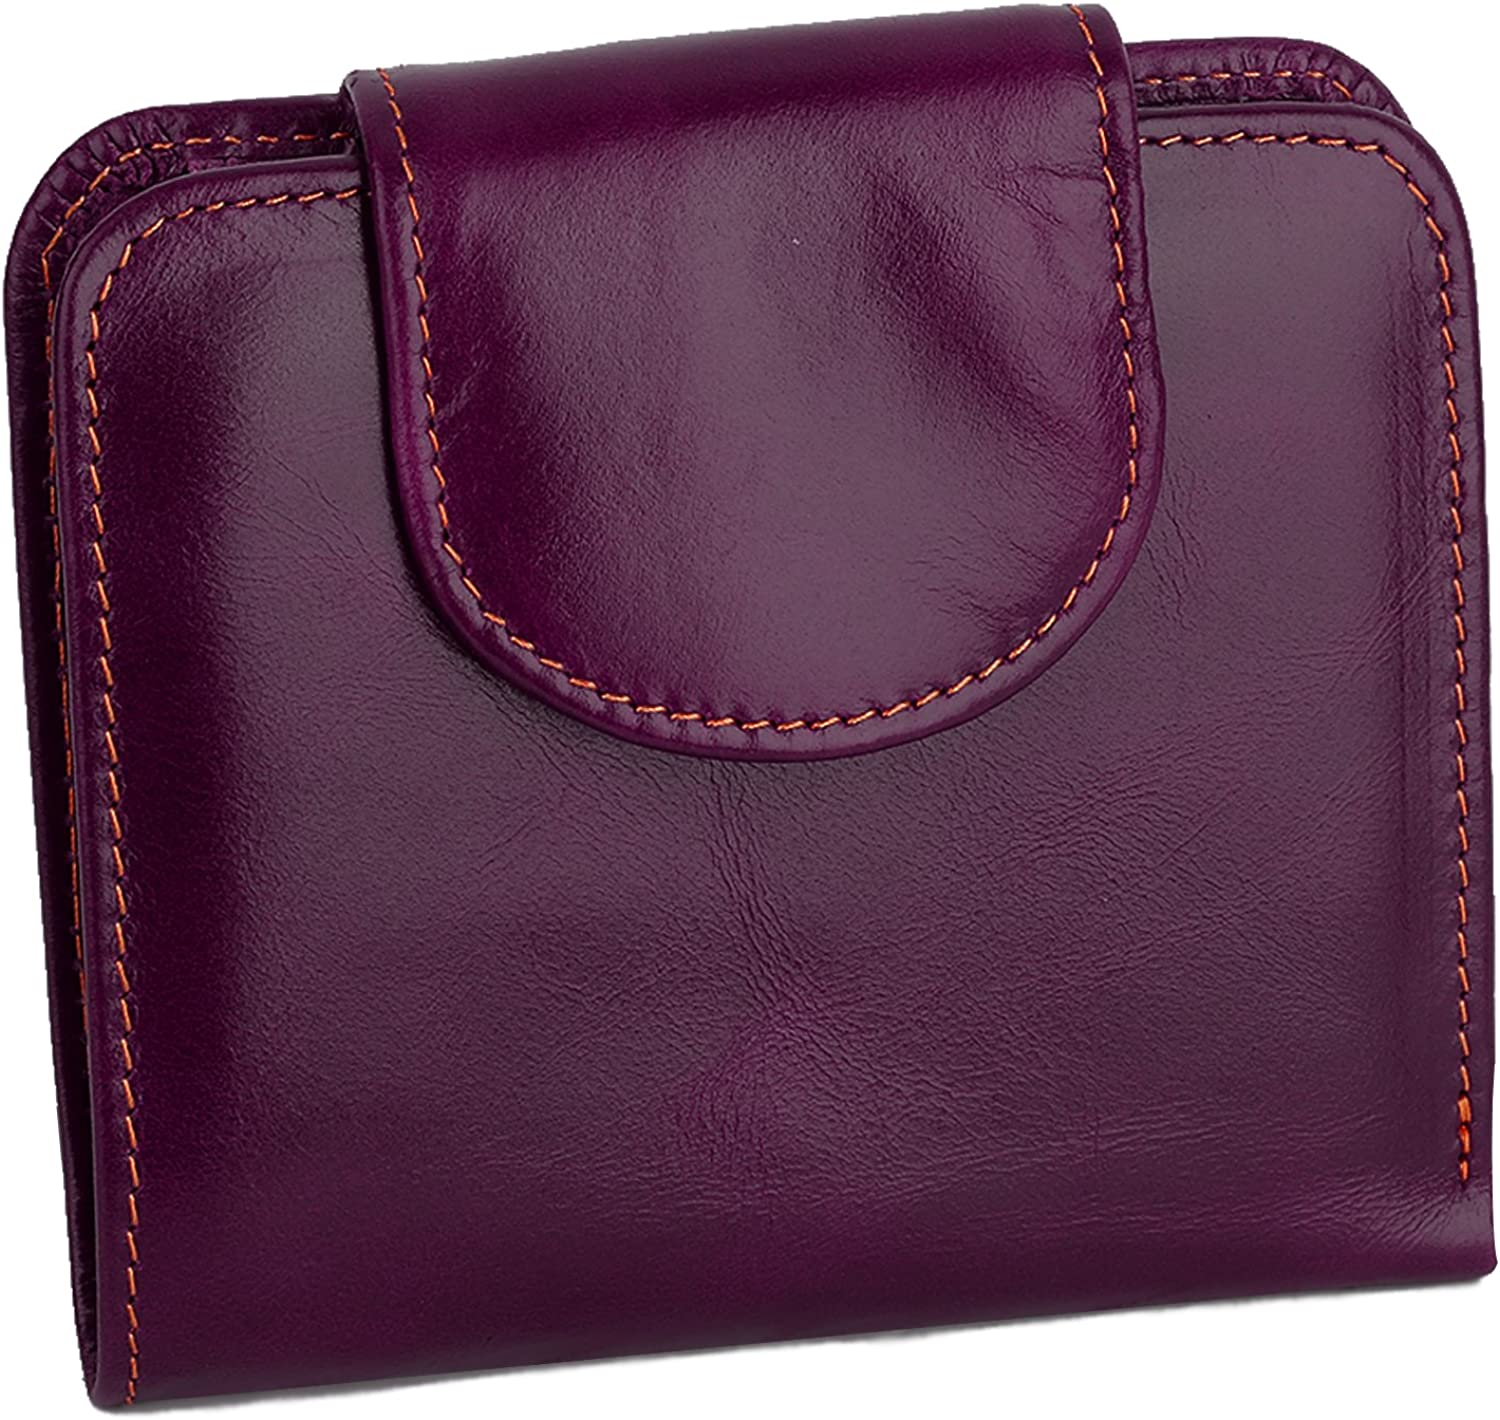 YALUXE Women's Large Capacity Small Compact Leather Wallet with Zipper Pocket ID Window